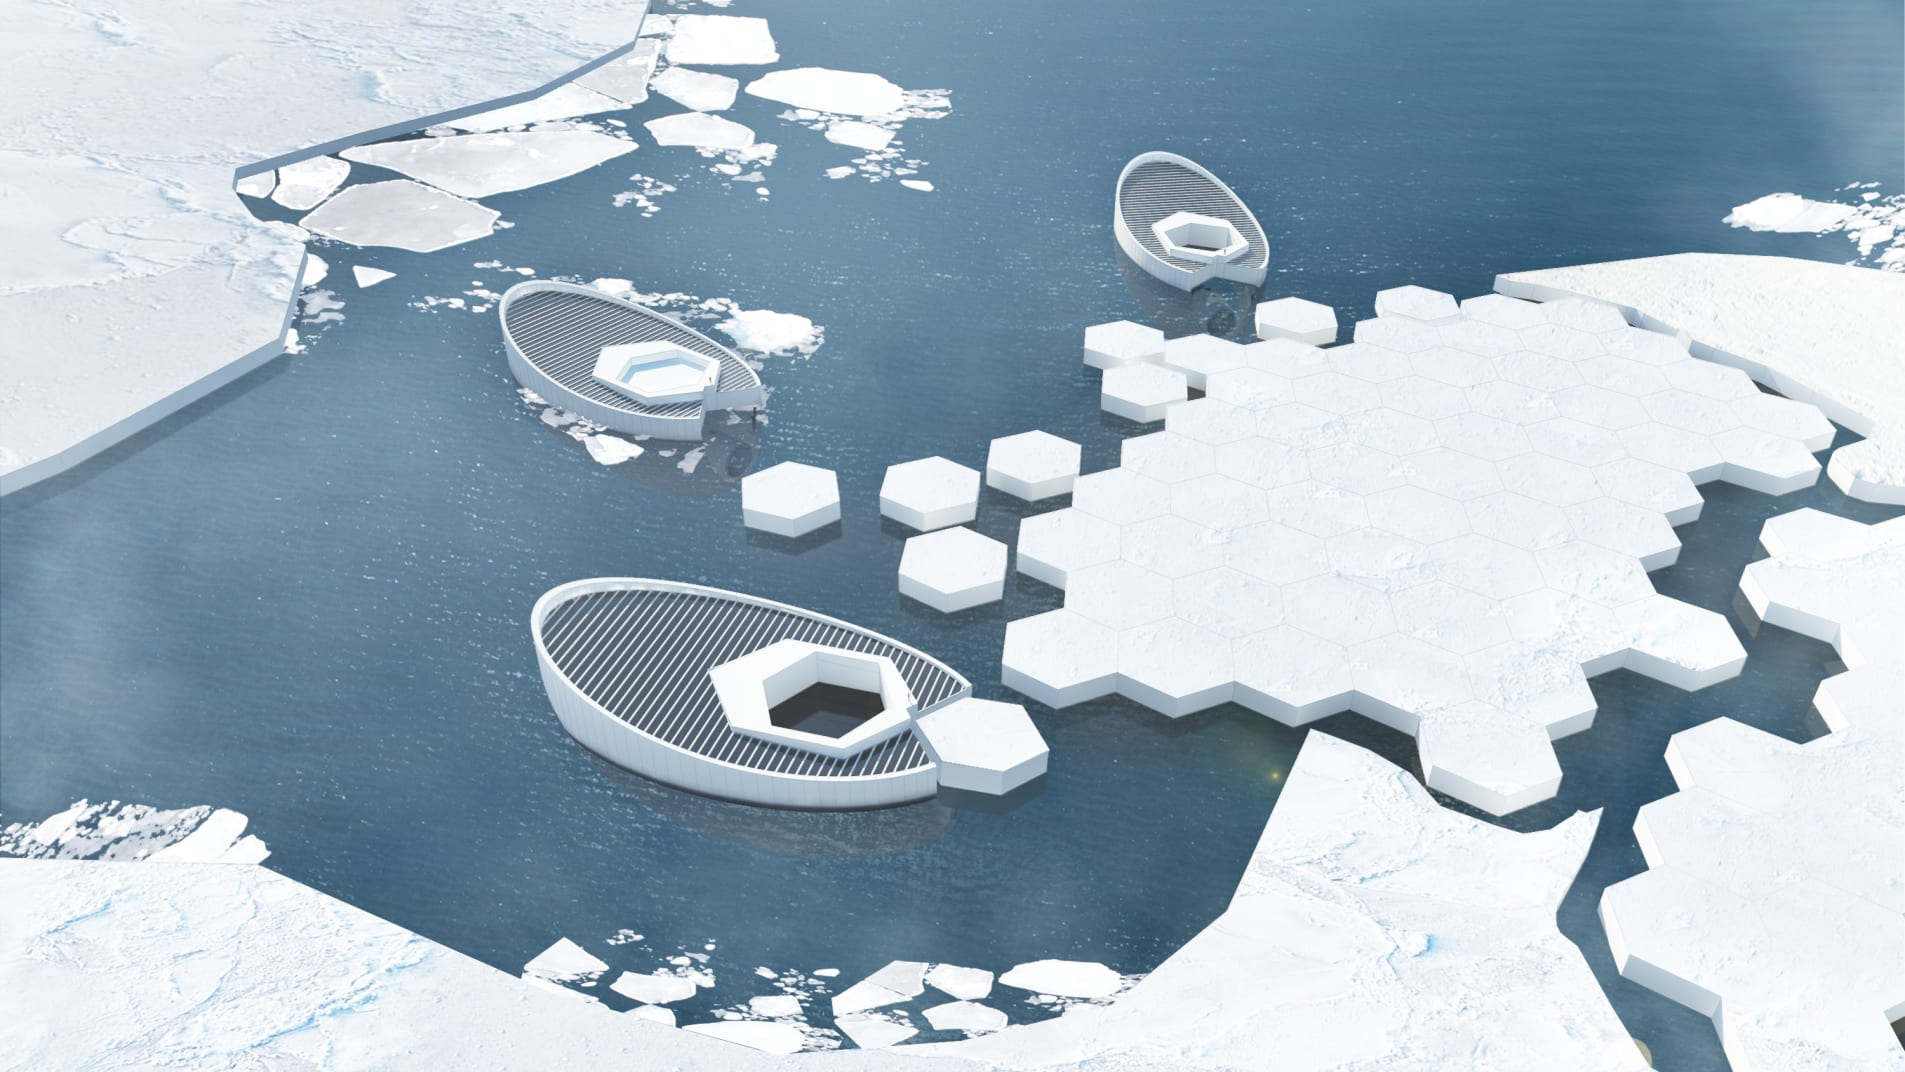 concept design of iceberg making boats